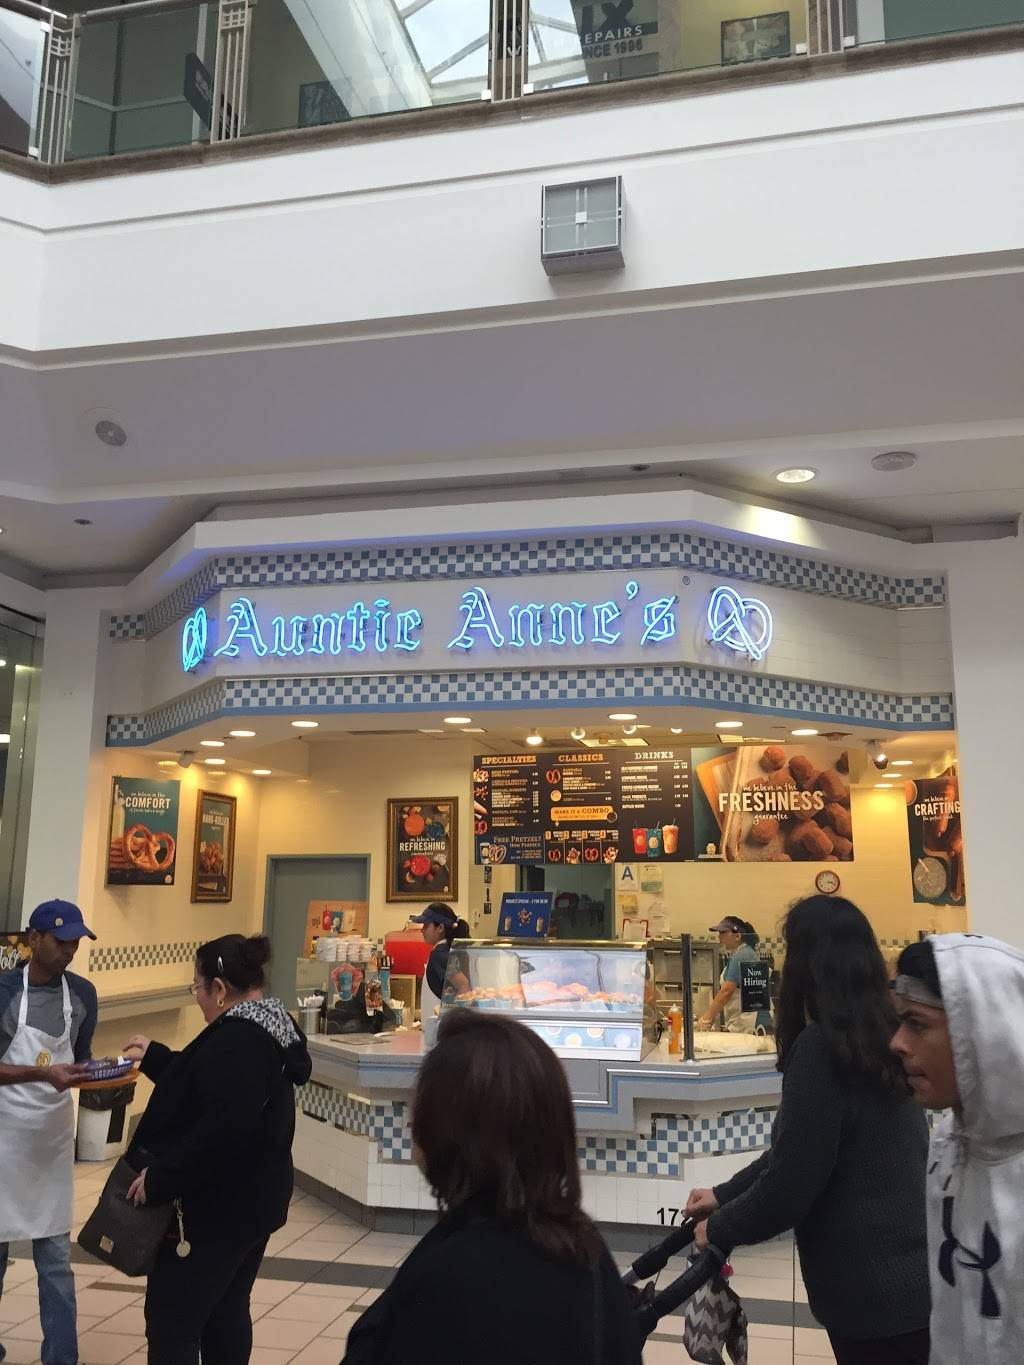 Auntie Annes   cafe   172 Plaza Dr, West Covina, CA 91790, USA   6268133670 OR +1 626-813-3670